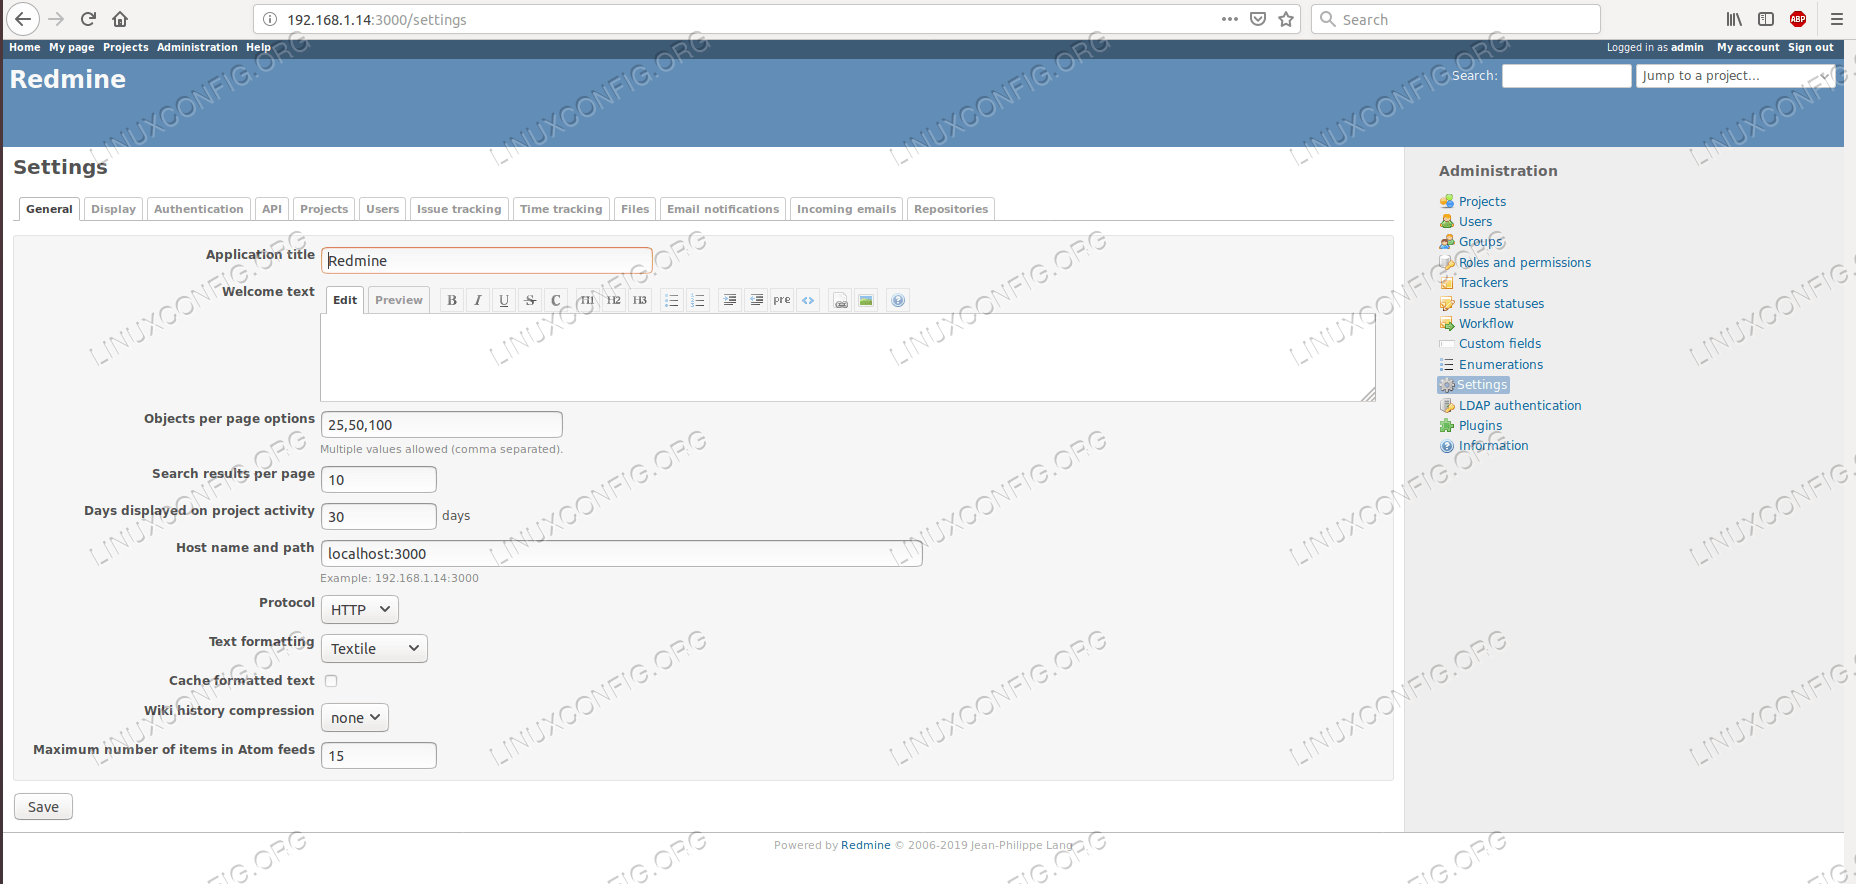 Configuration page of Redmine.